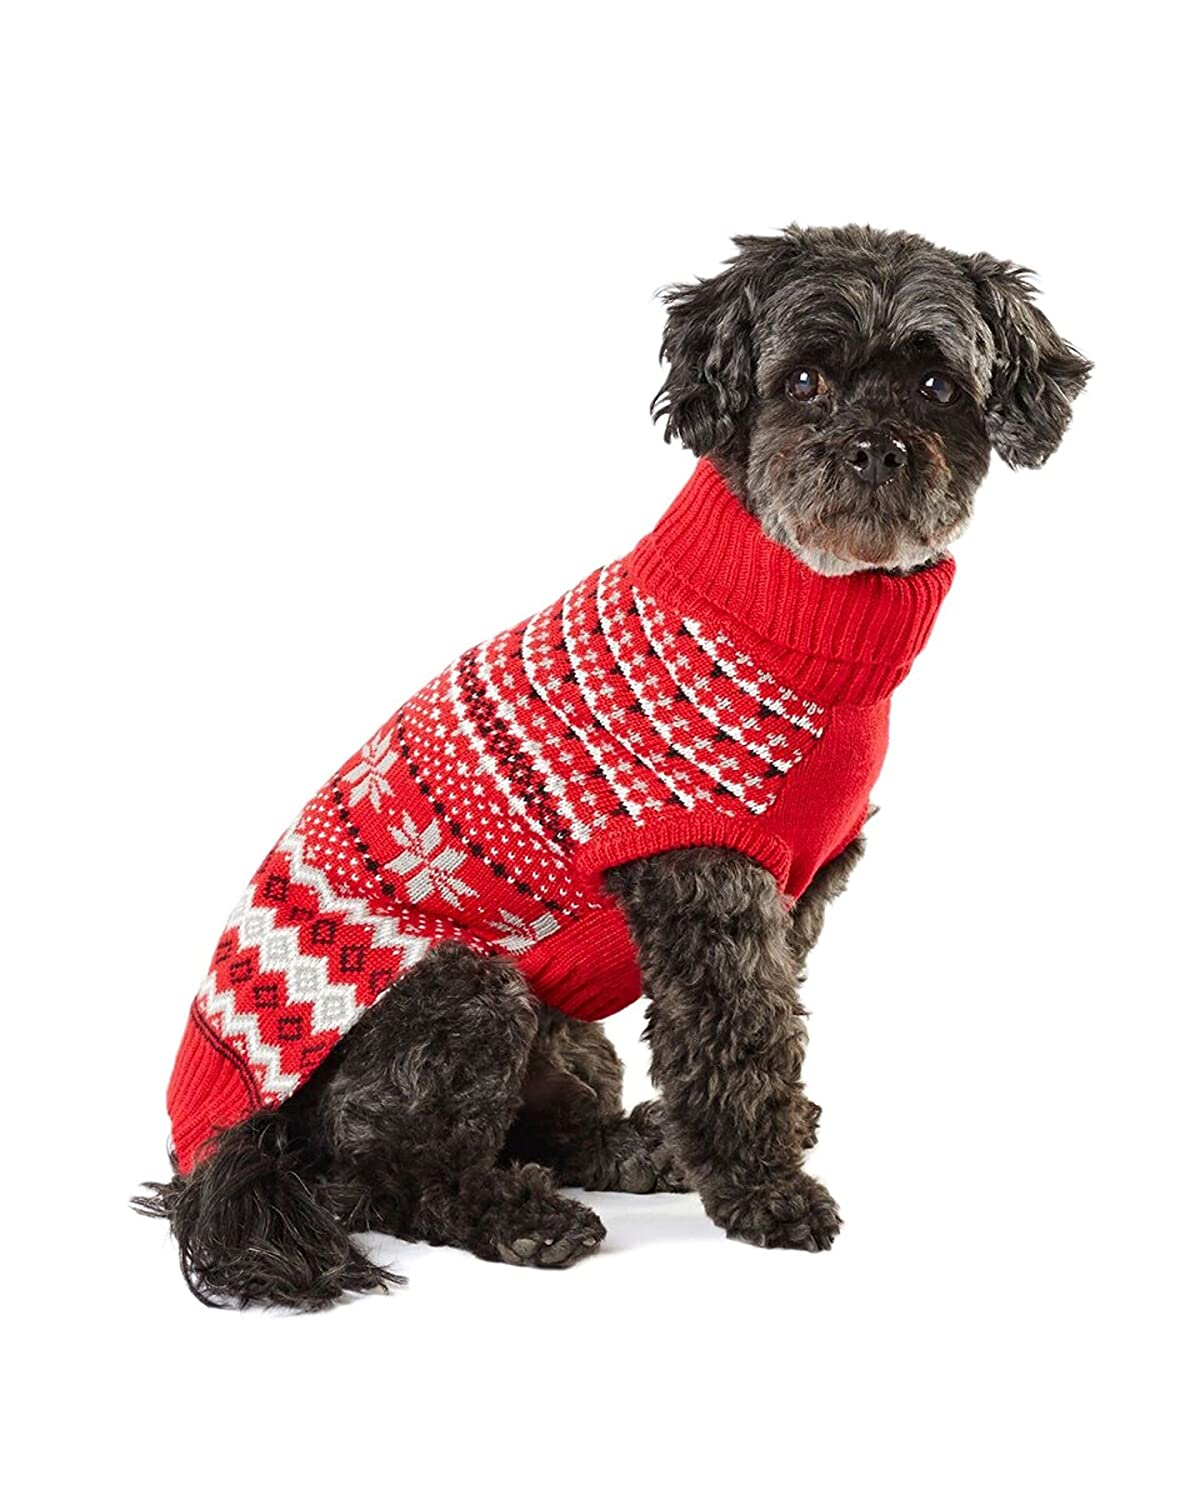 X-Small Hotel Doggy DW00004BPXSR Cranberry Red Intarsia Snowflake Sweater, X-Small